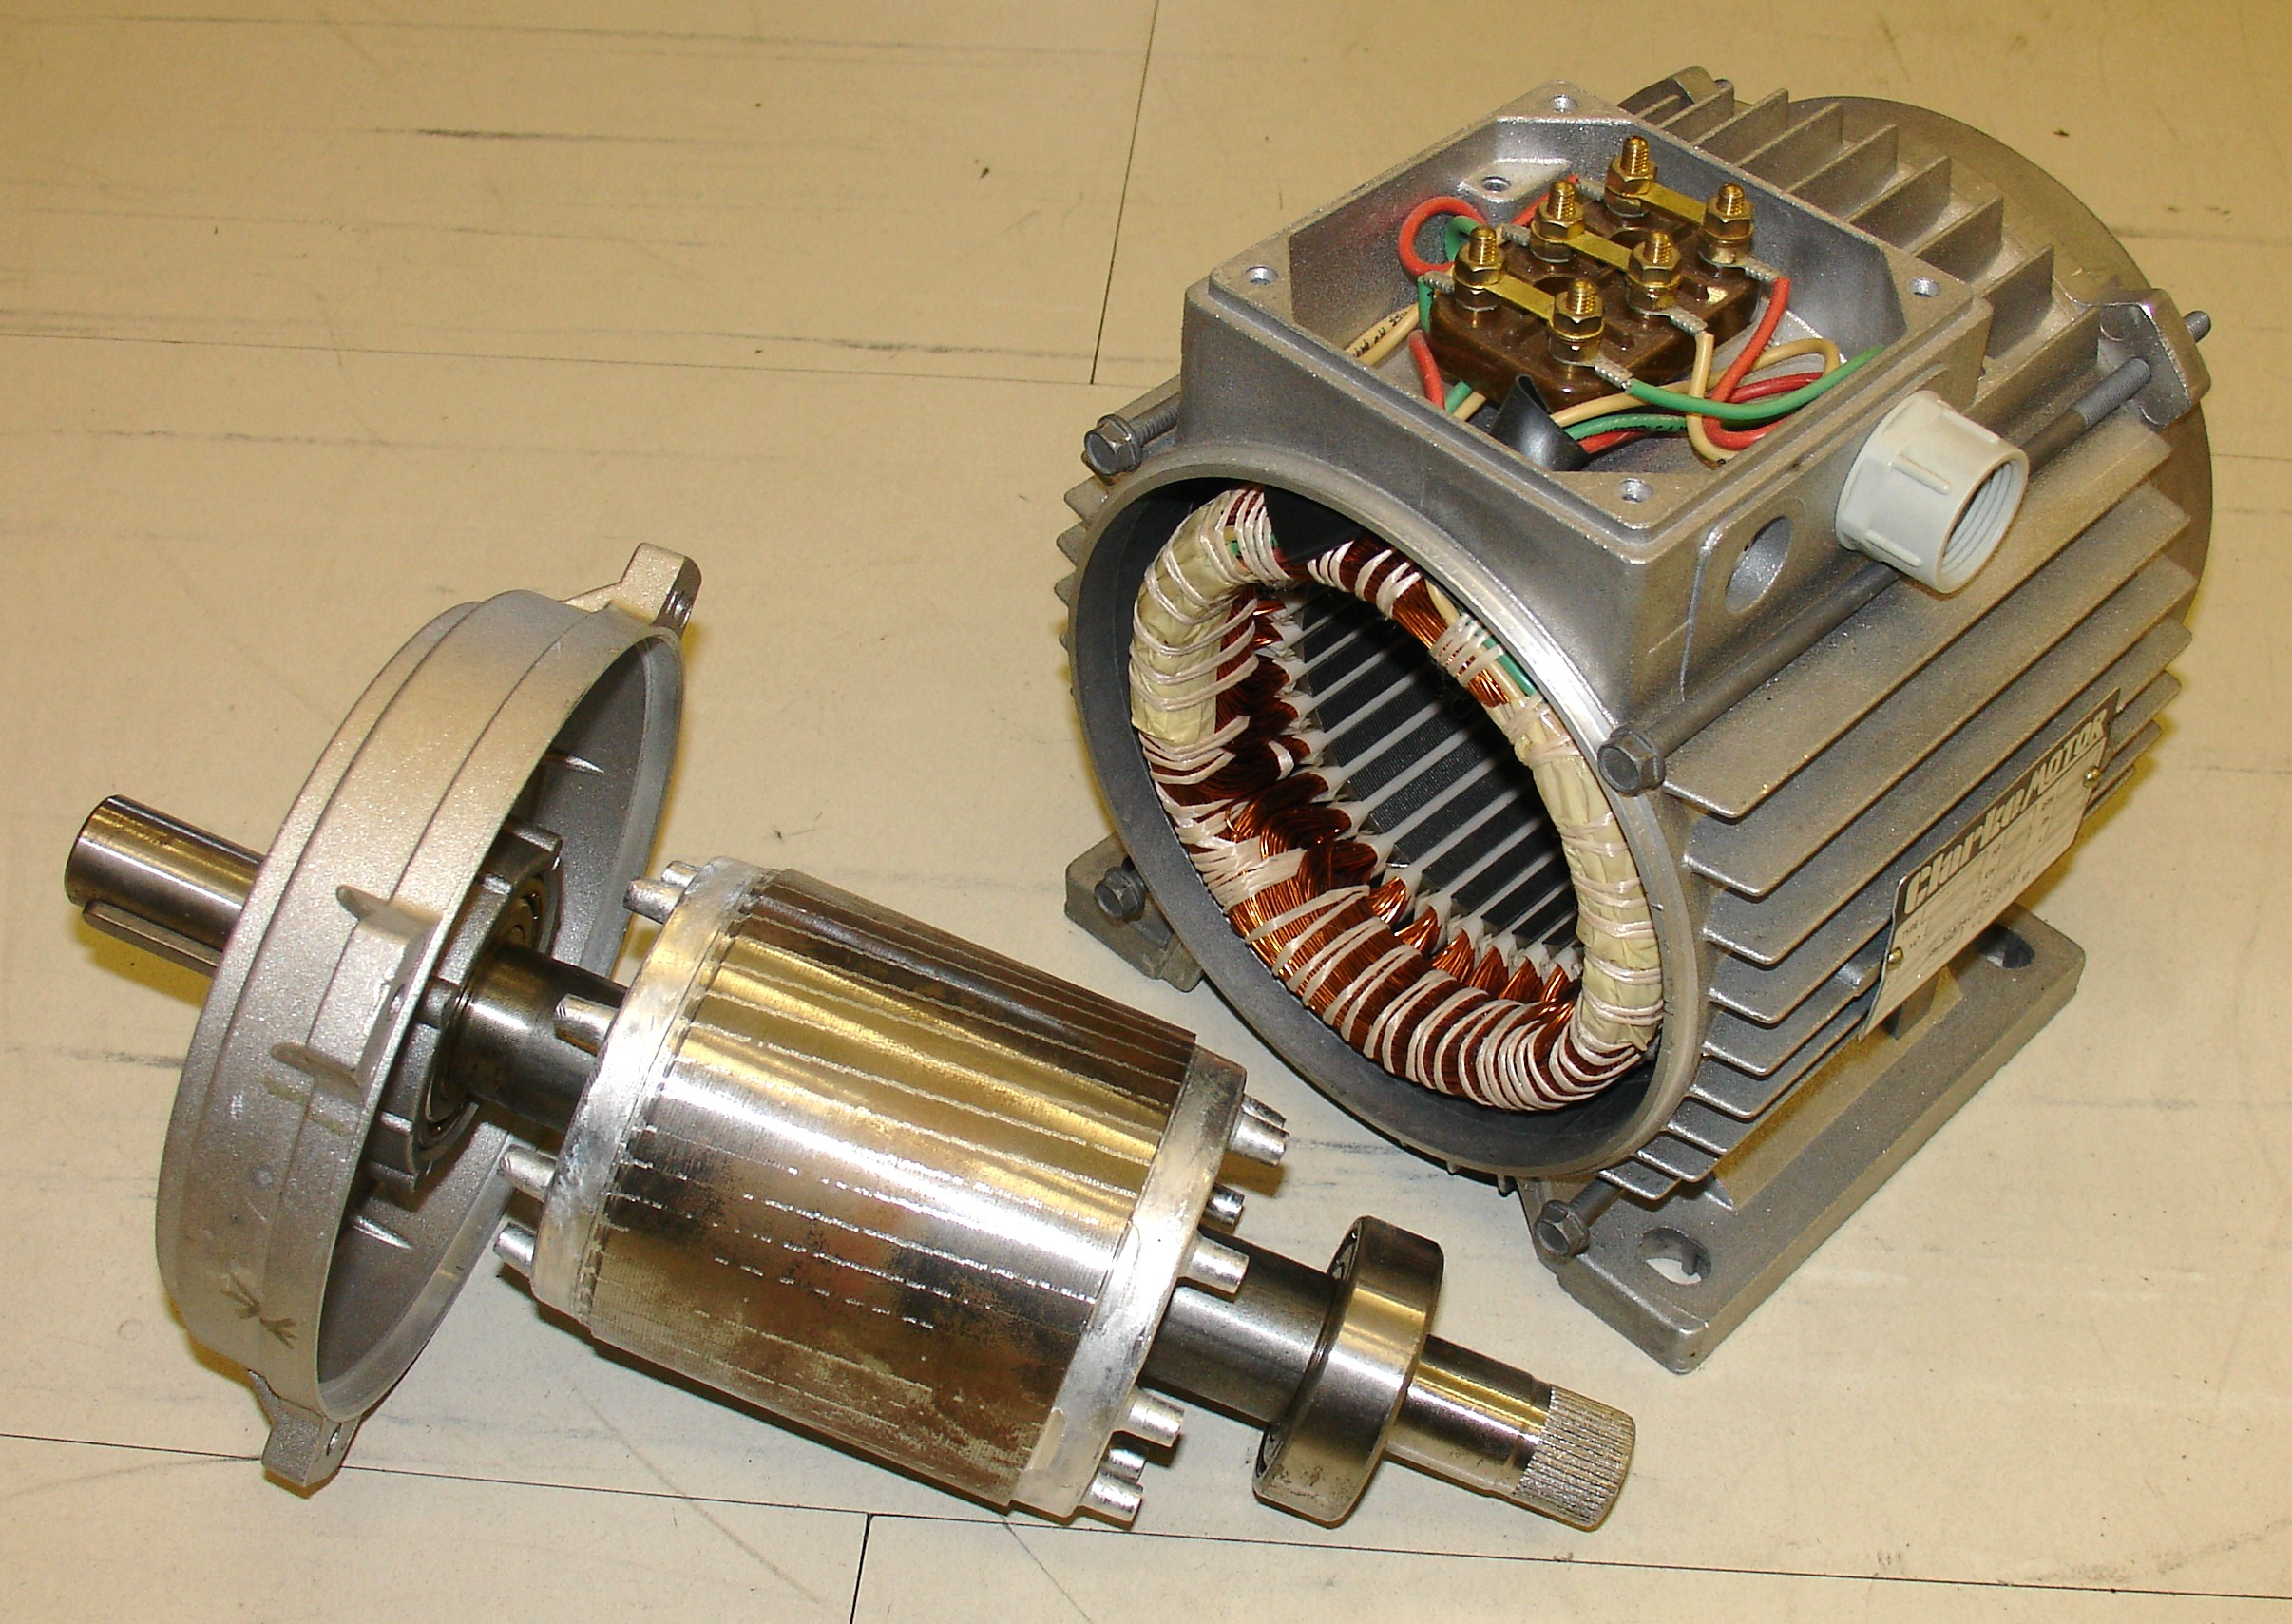 http://upload.wikimedia.org/wikipedia/commons/5/58/Stator_and_rotor_by_Zureks.JPG